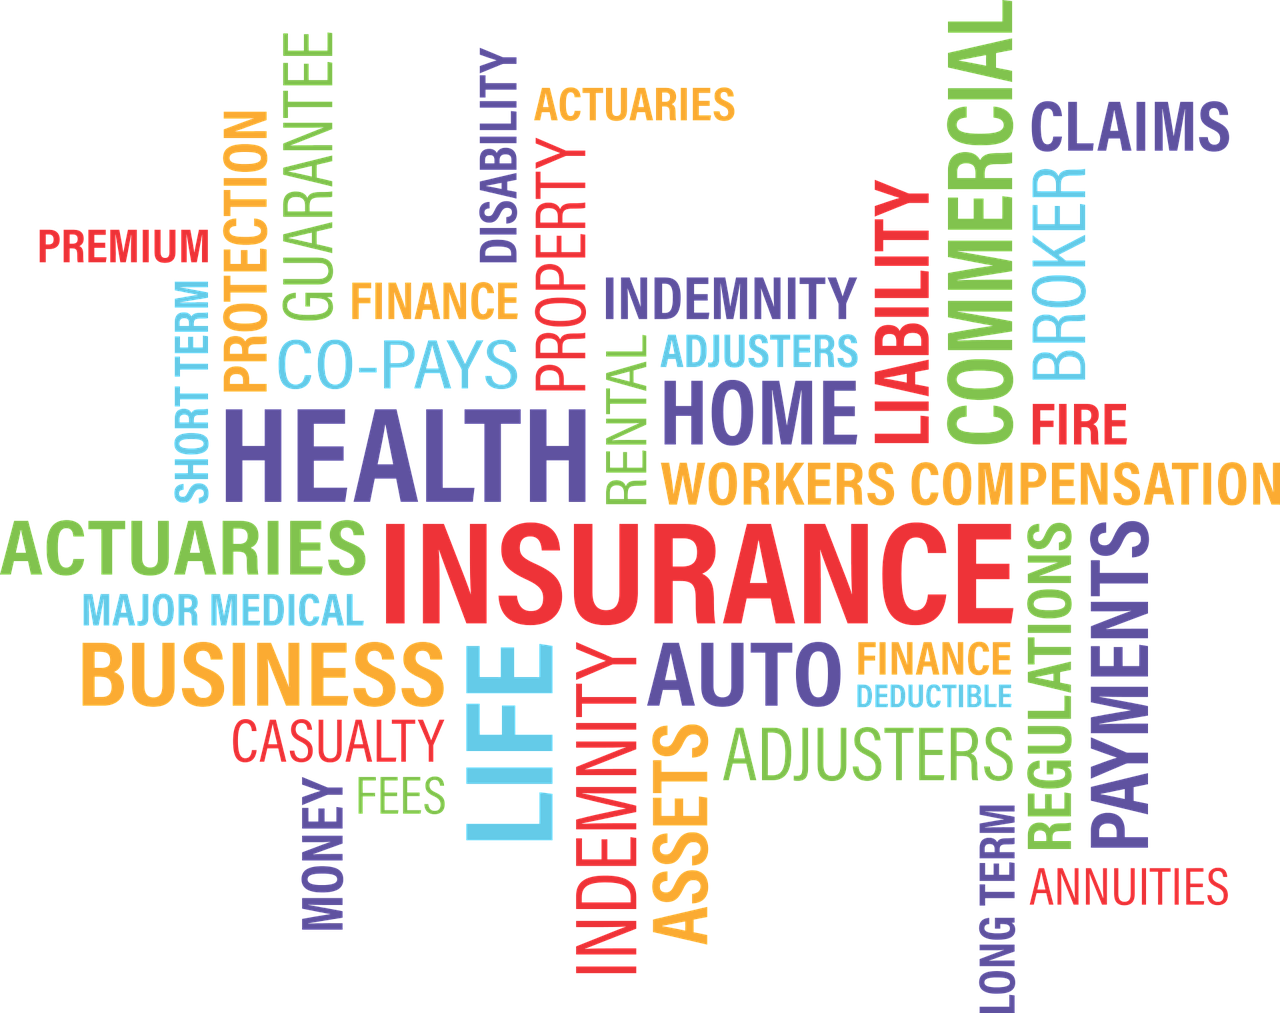 Small Business Insurance Business Insurance Life Insurance